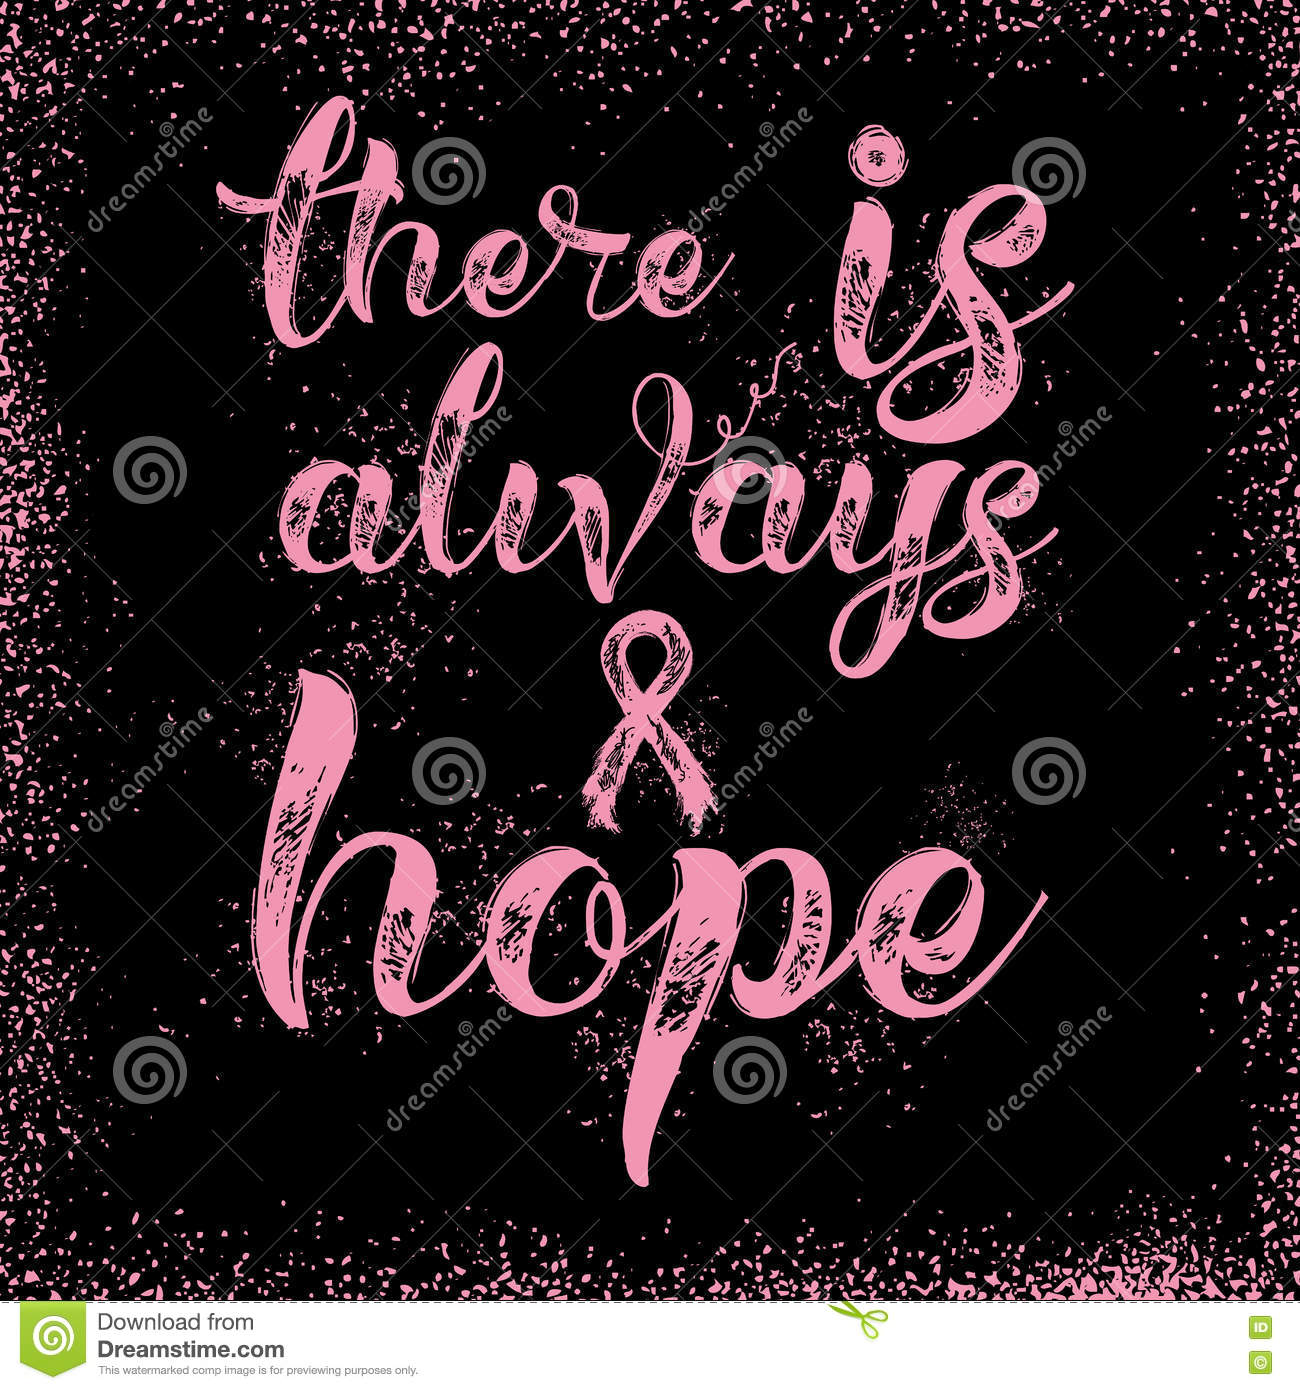 Inspirational Quotes For Cancer Awareness: There Is Always Hope. Inspirational Quote About Breast